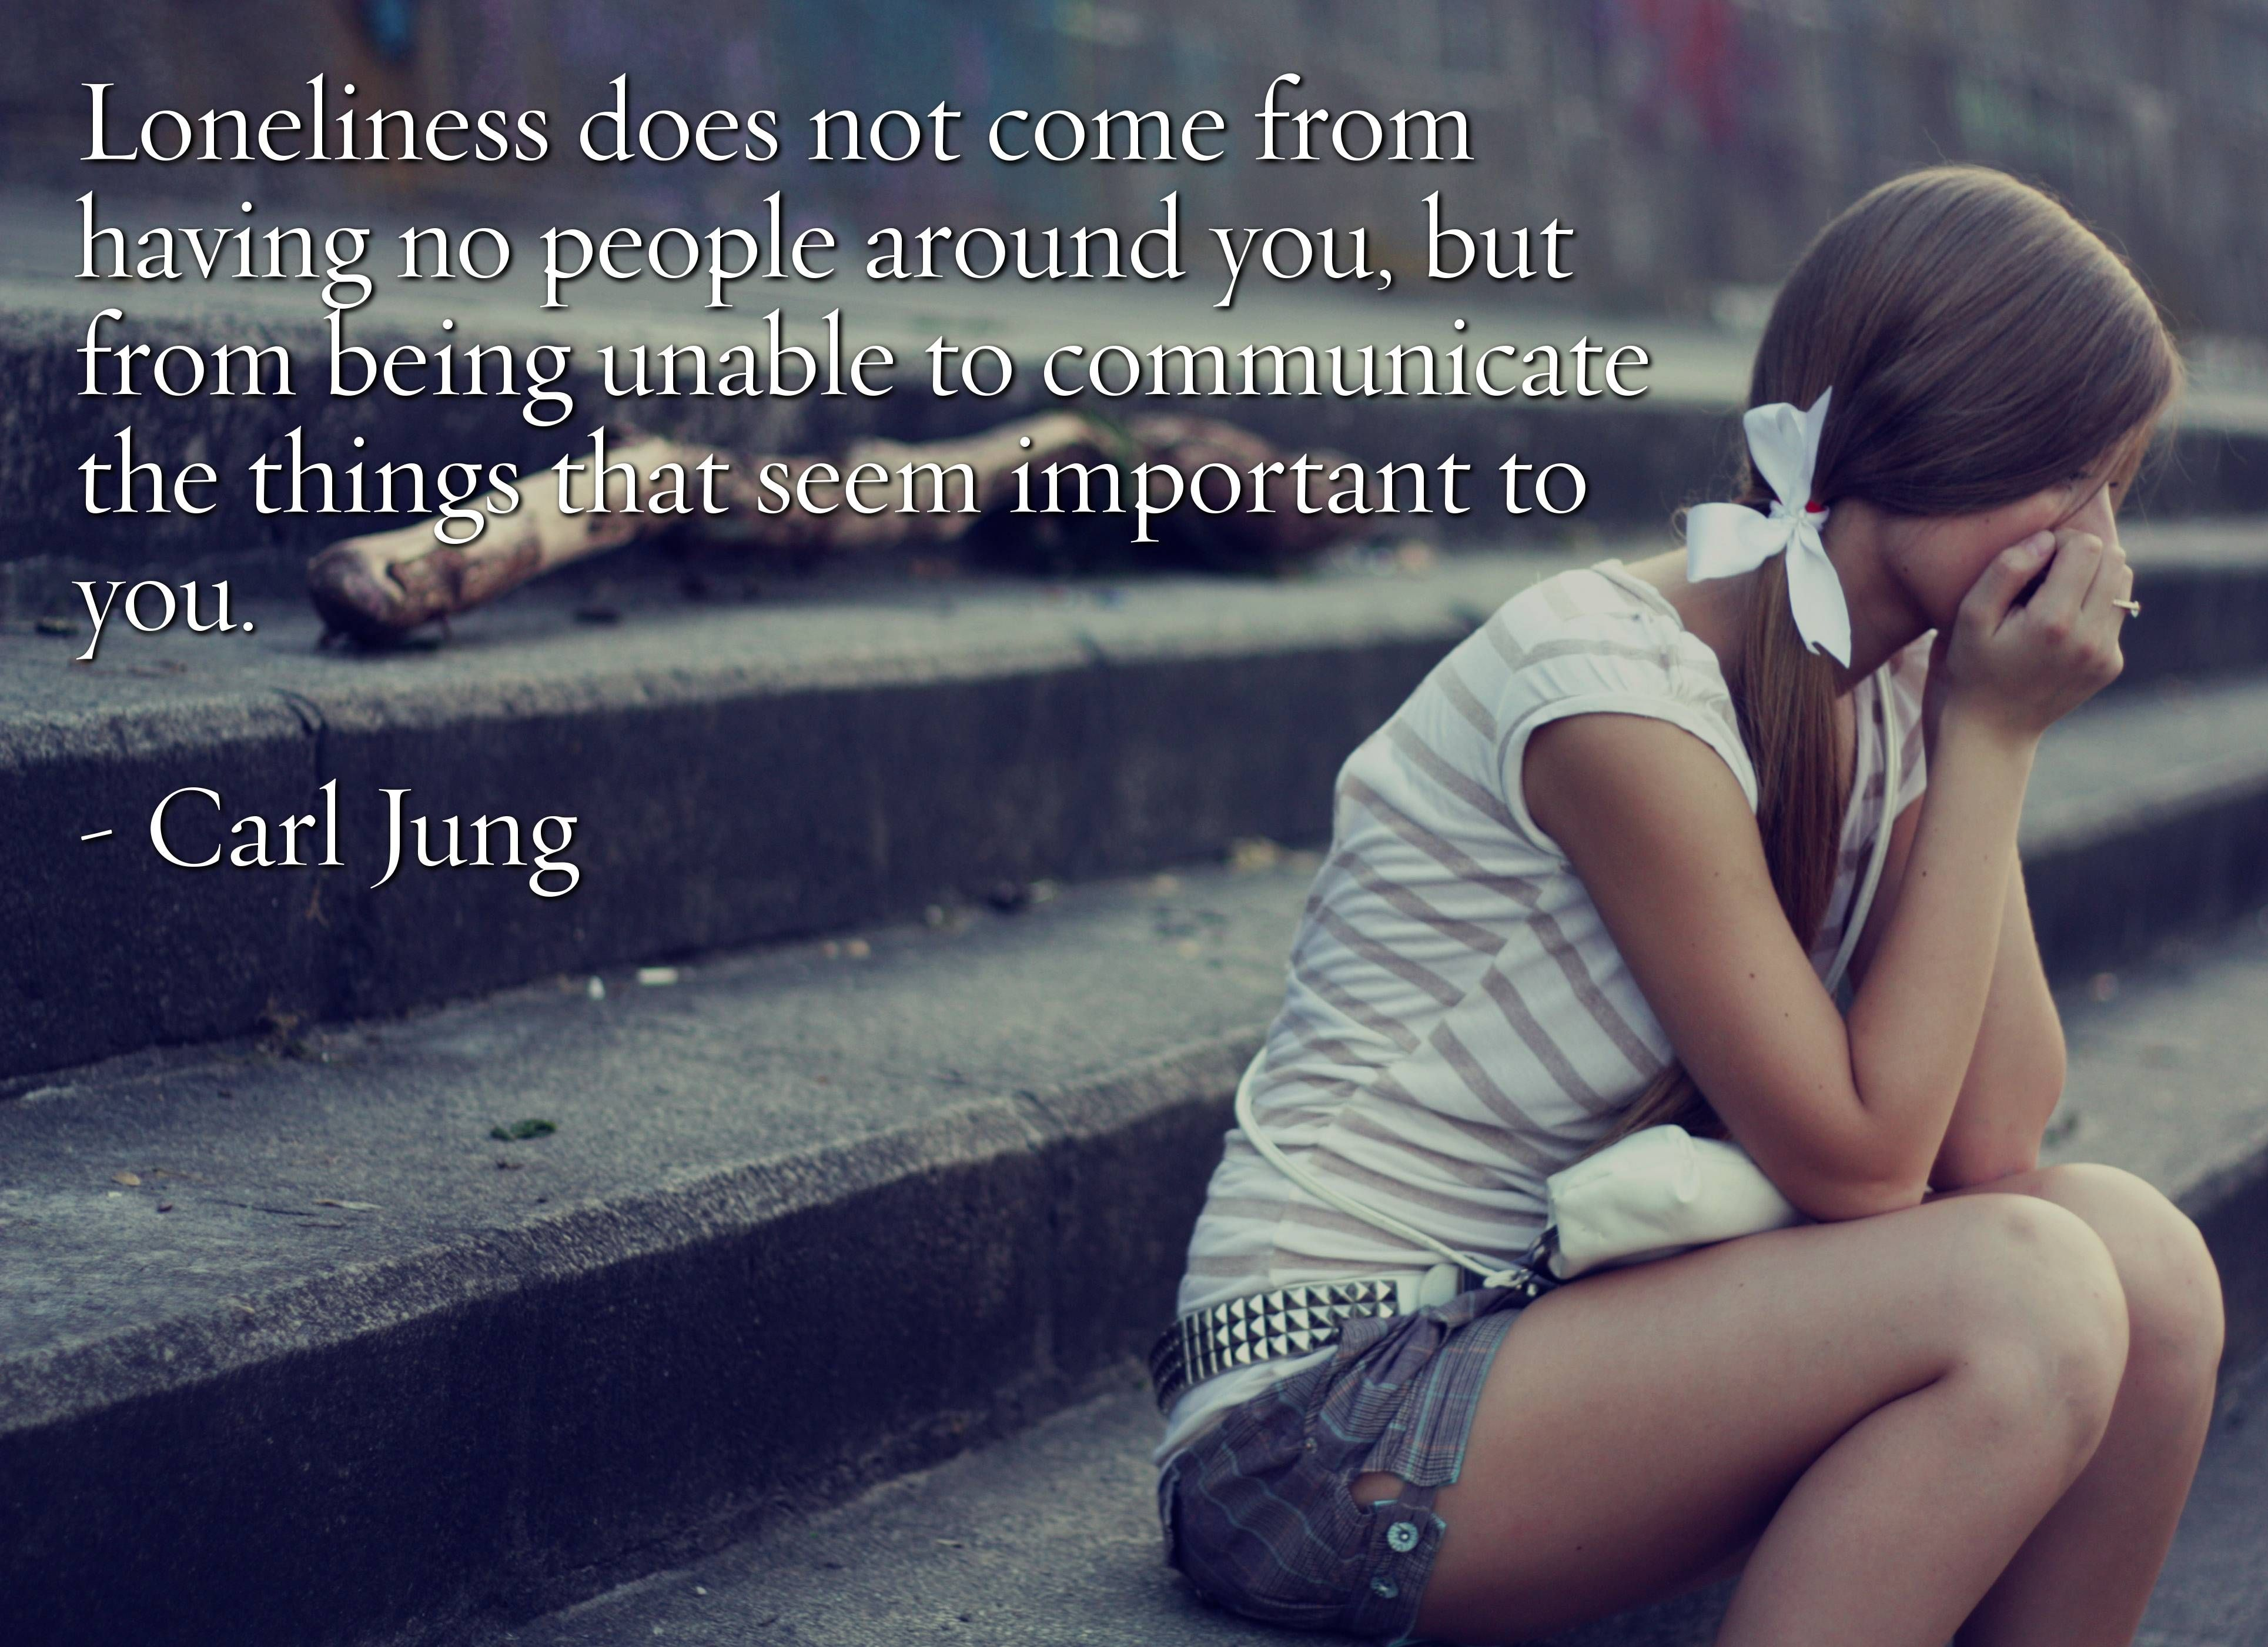 Loneliness does not e from have no people around you but from being unable to